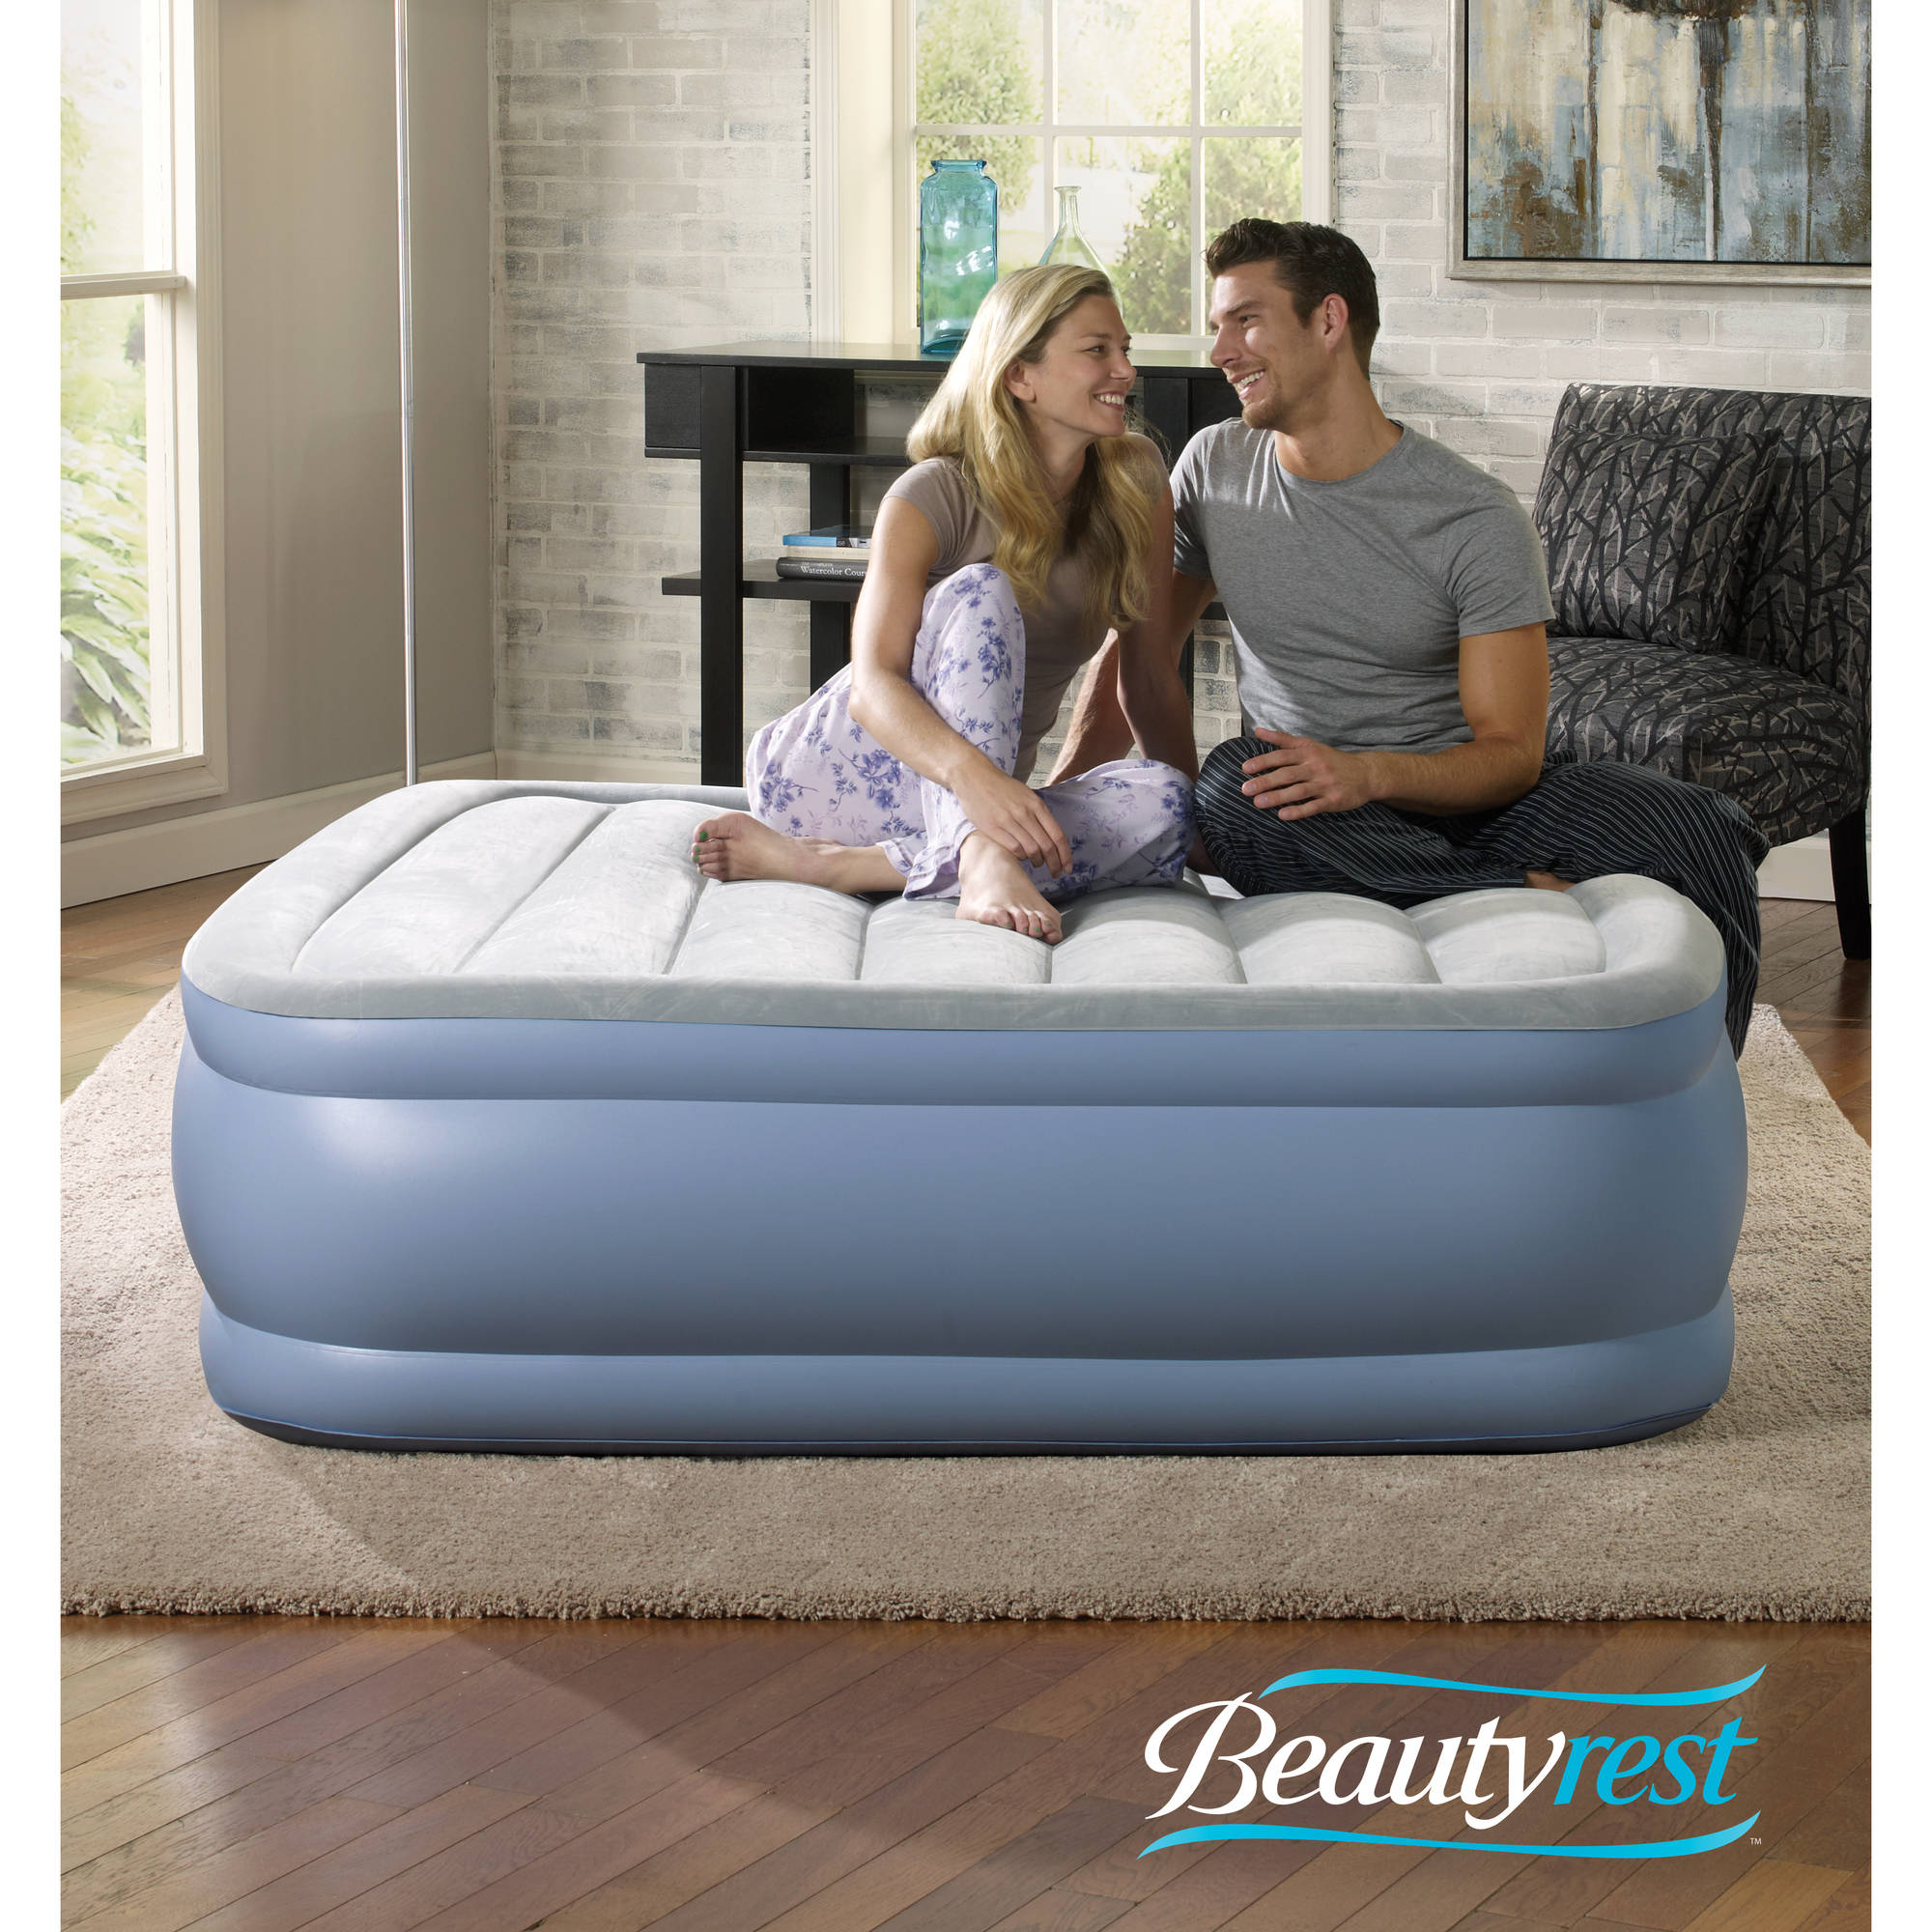 King Size Air Bed Camping Beautyrest Hi Loft Raised Air Bed Mattress With Express Pump